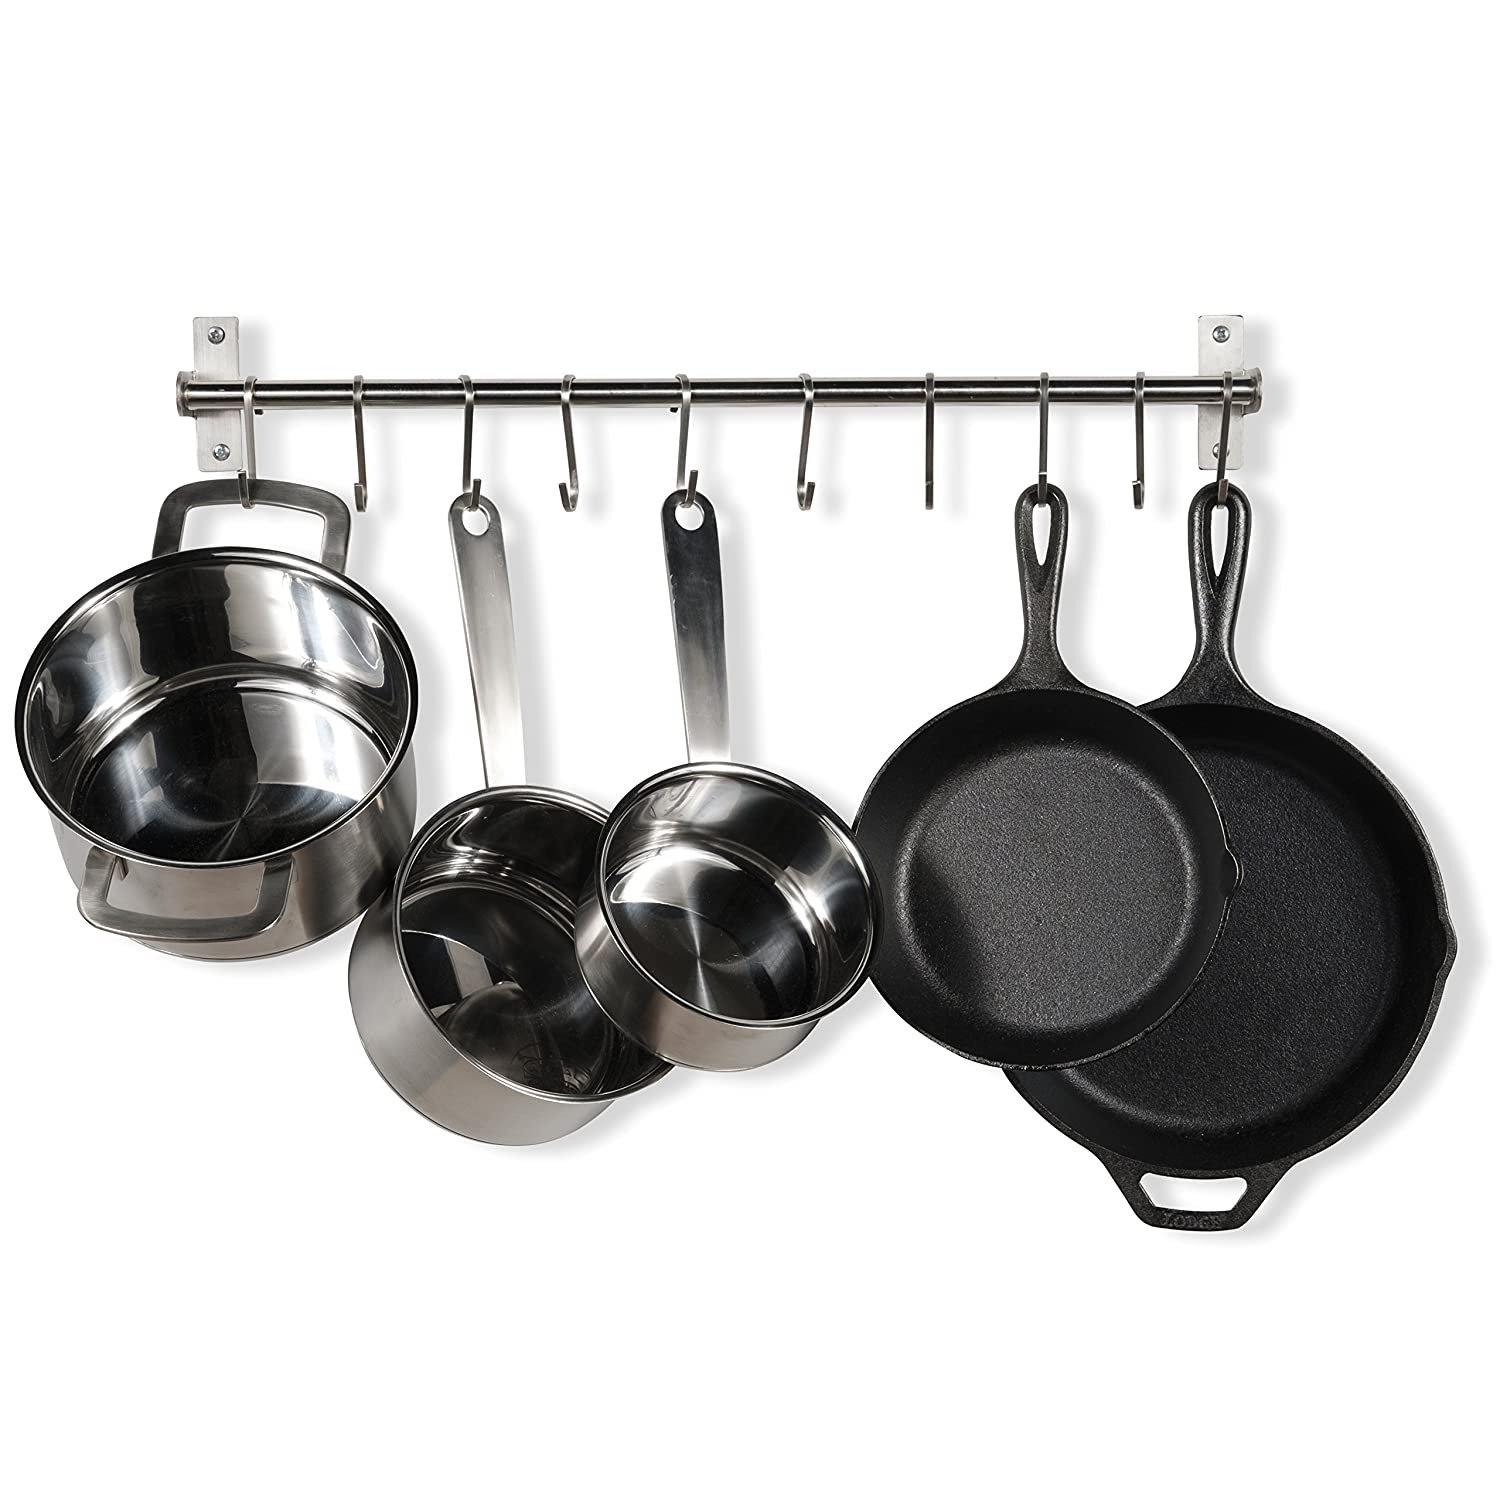 Stainless Steel Gourmet Kitchen 23.25 Inch Wall Rail Pot Pan Utensil Lid Rack Storage Organizer with 10 S Hooks Fasthomegoods SYNCHKG076214